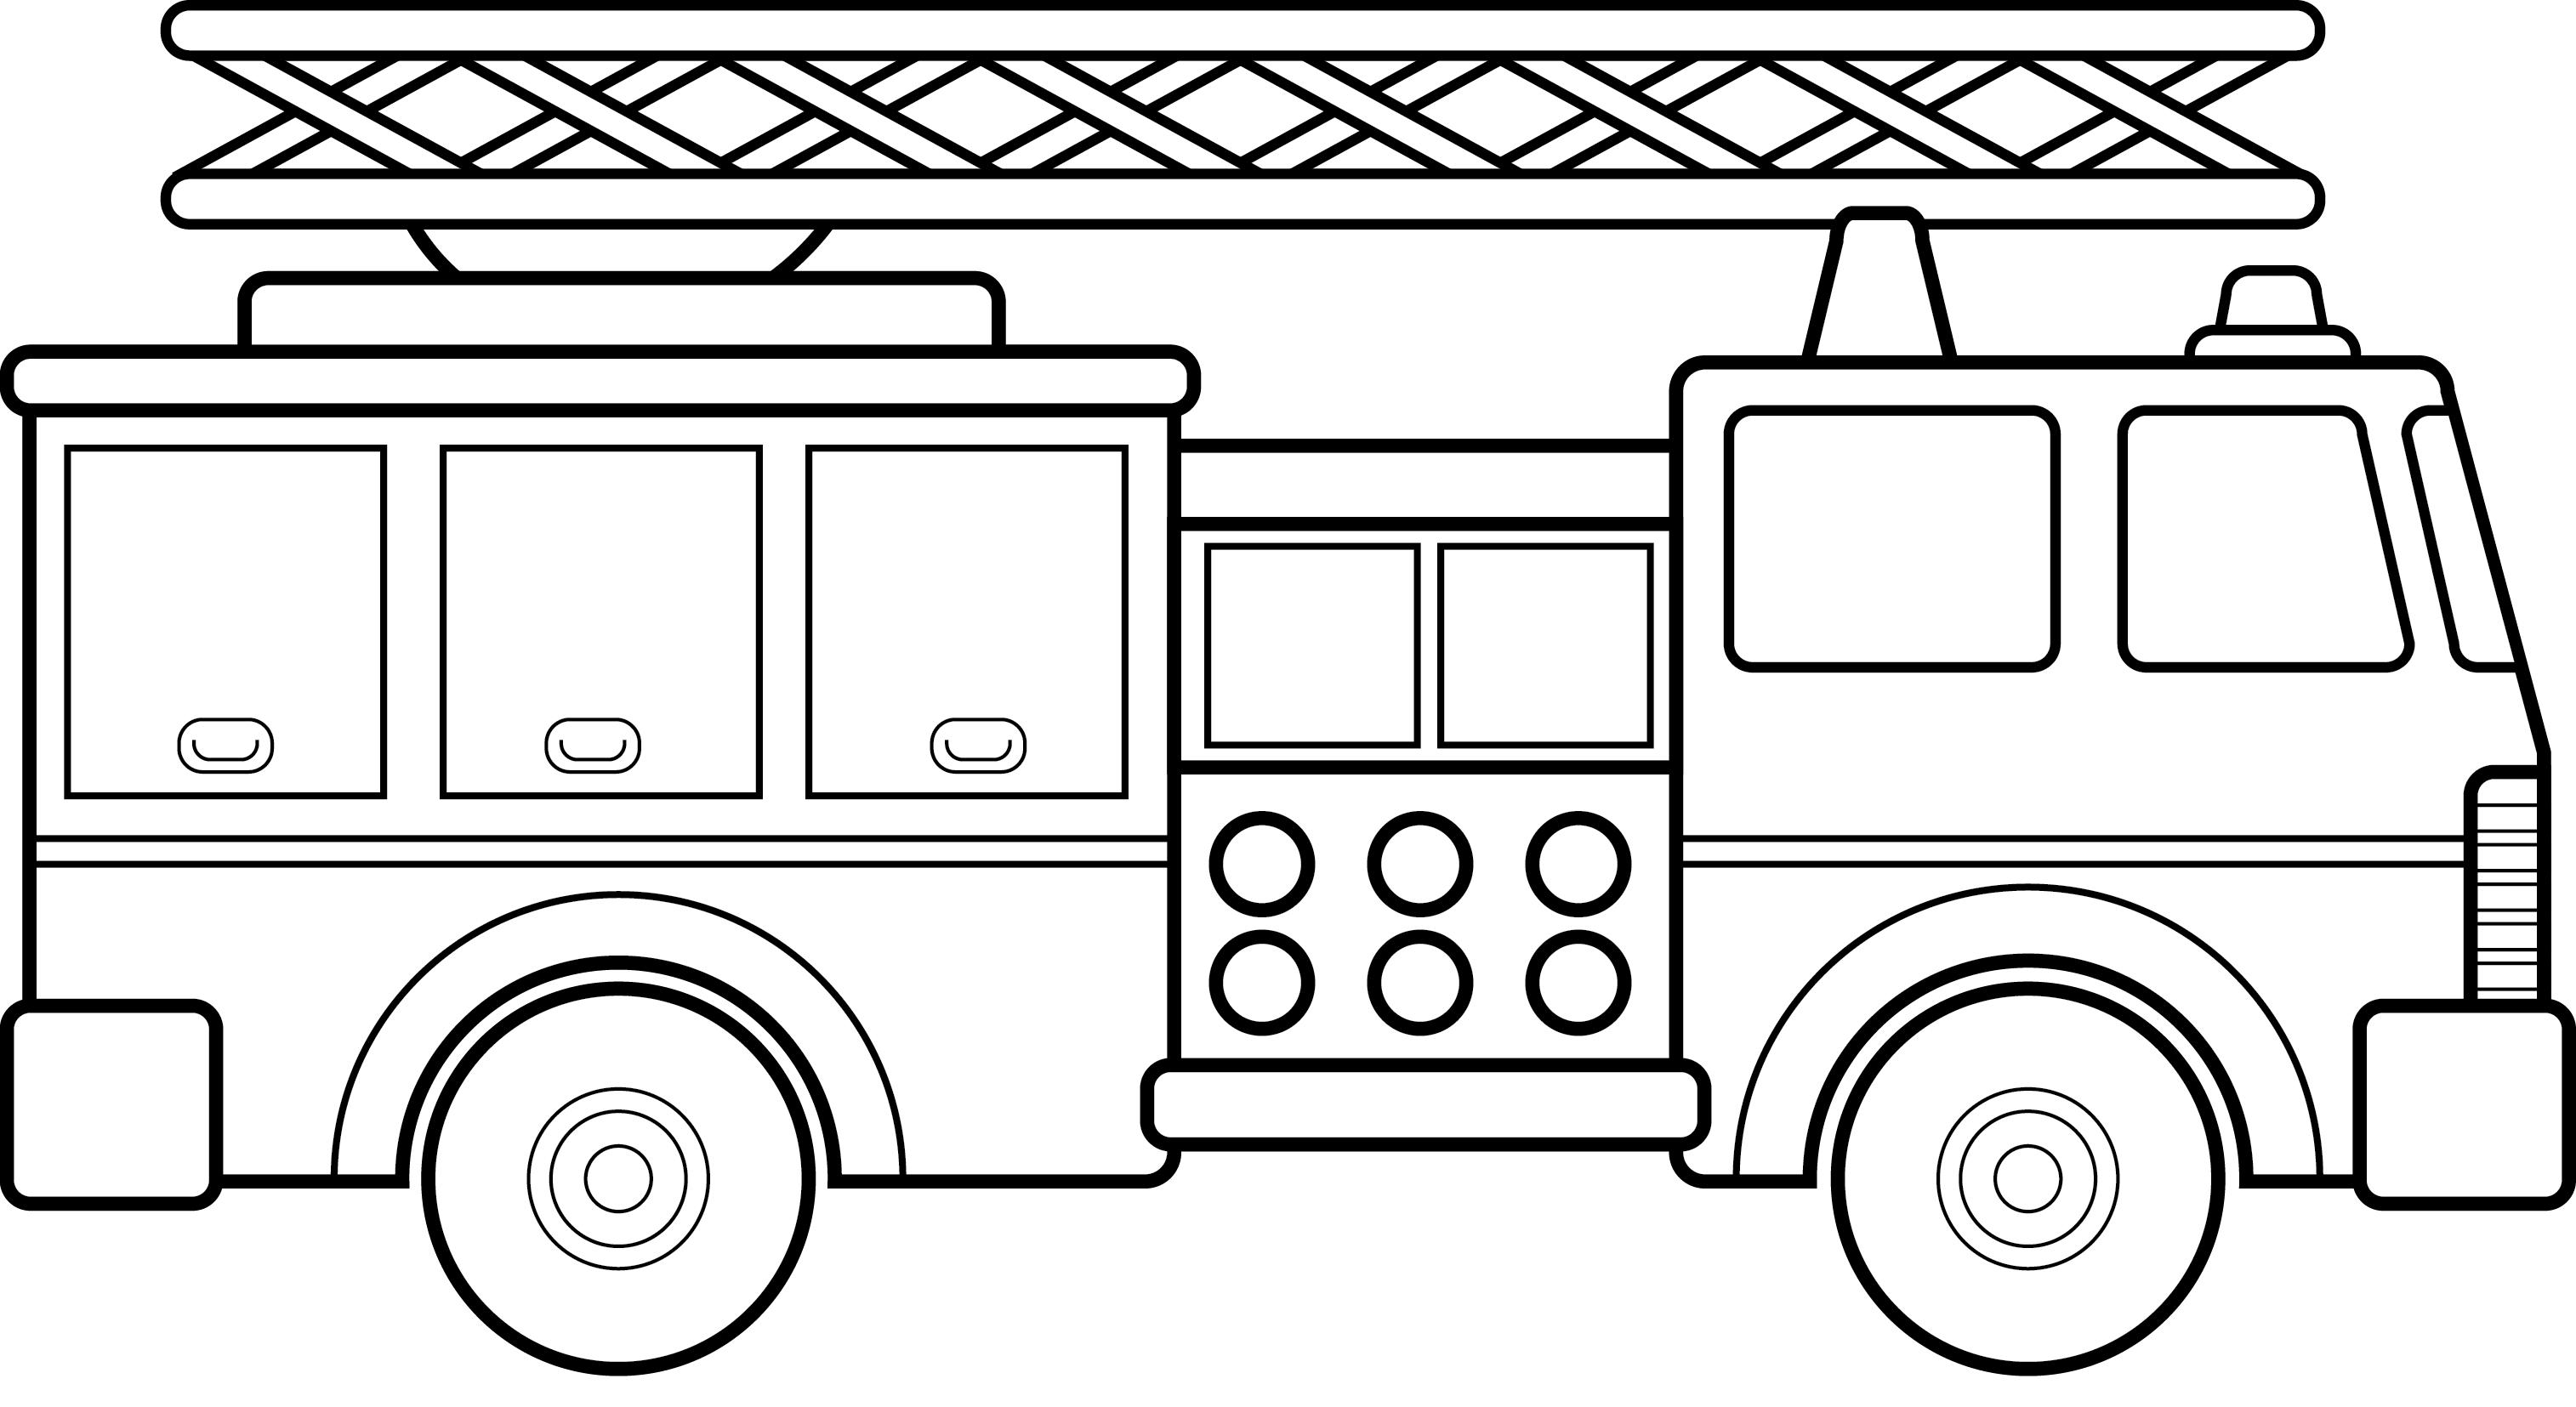 Top fire truck cars and trucks clip art black white car library.